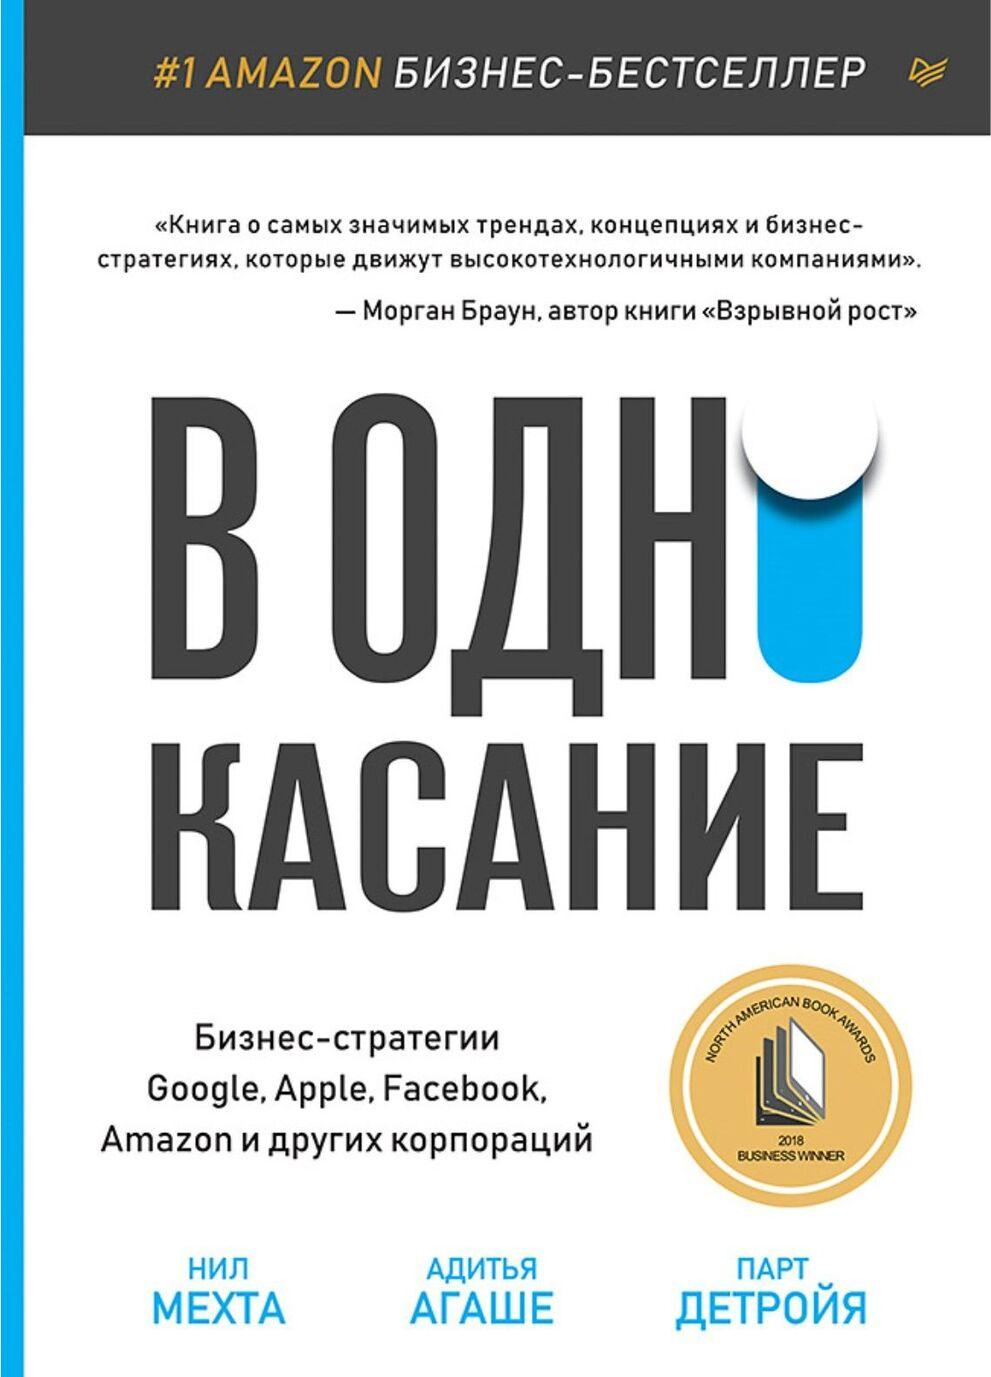 V odno kasanie. Biznes-strategii Google, Apple, Facebook, Amazon i drugikh korporatsij